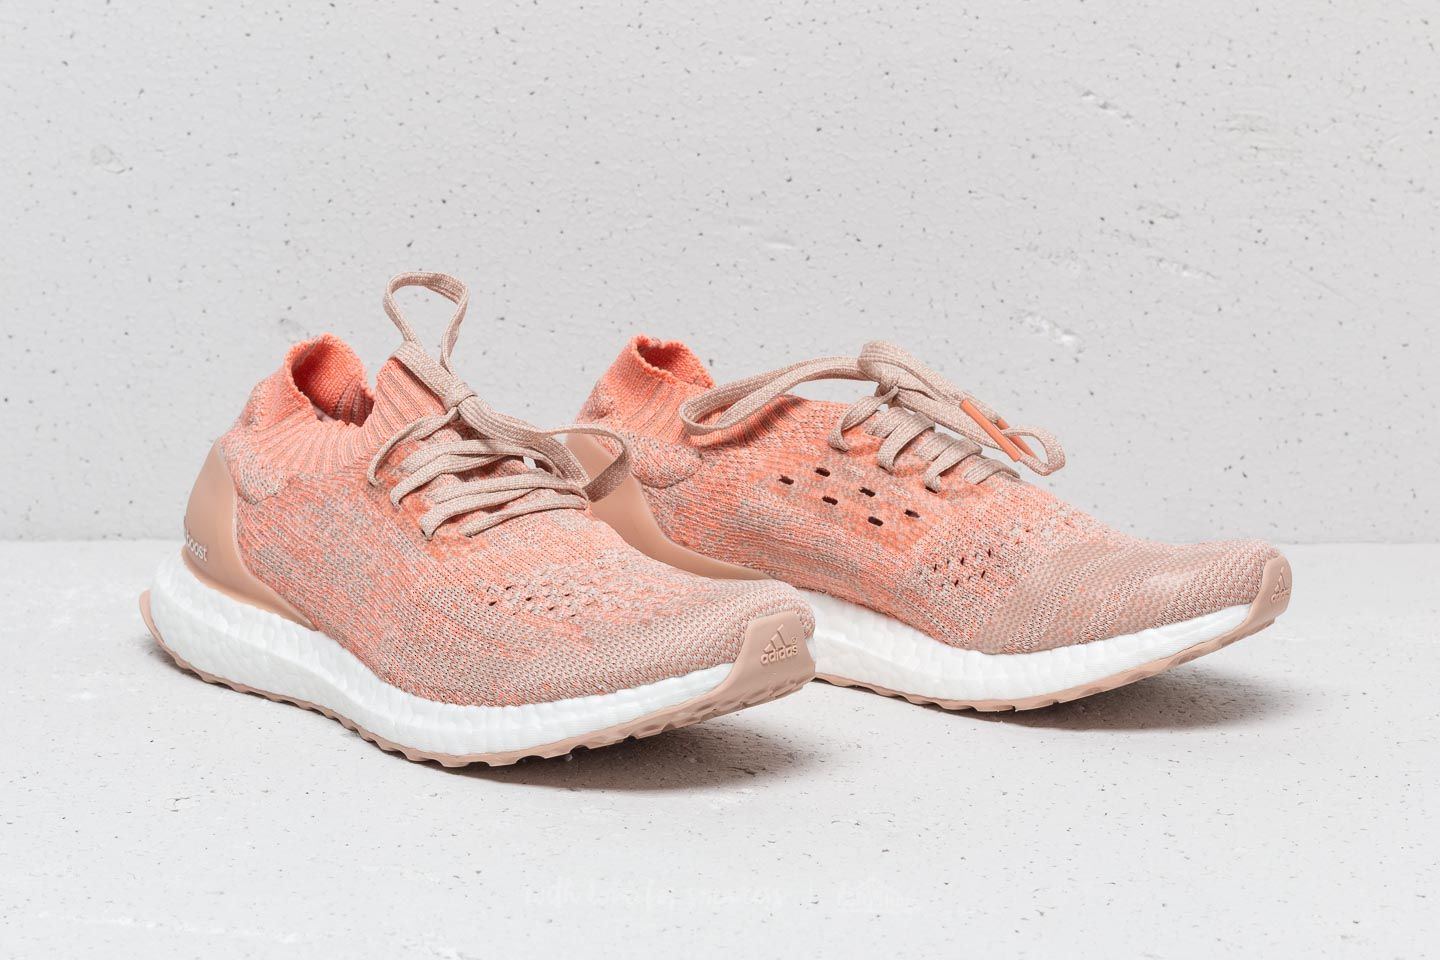 5a21d2e86cd ... wholesale adidas ultraboost uncaged w ash pearl chalk coral clear  orange at a great price 7bcea ...